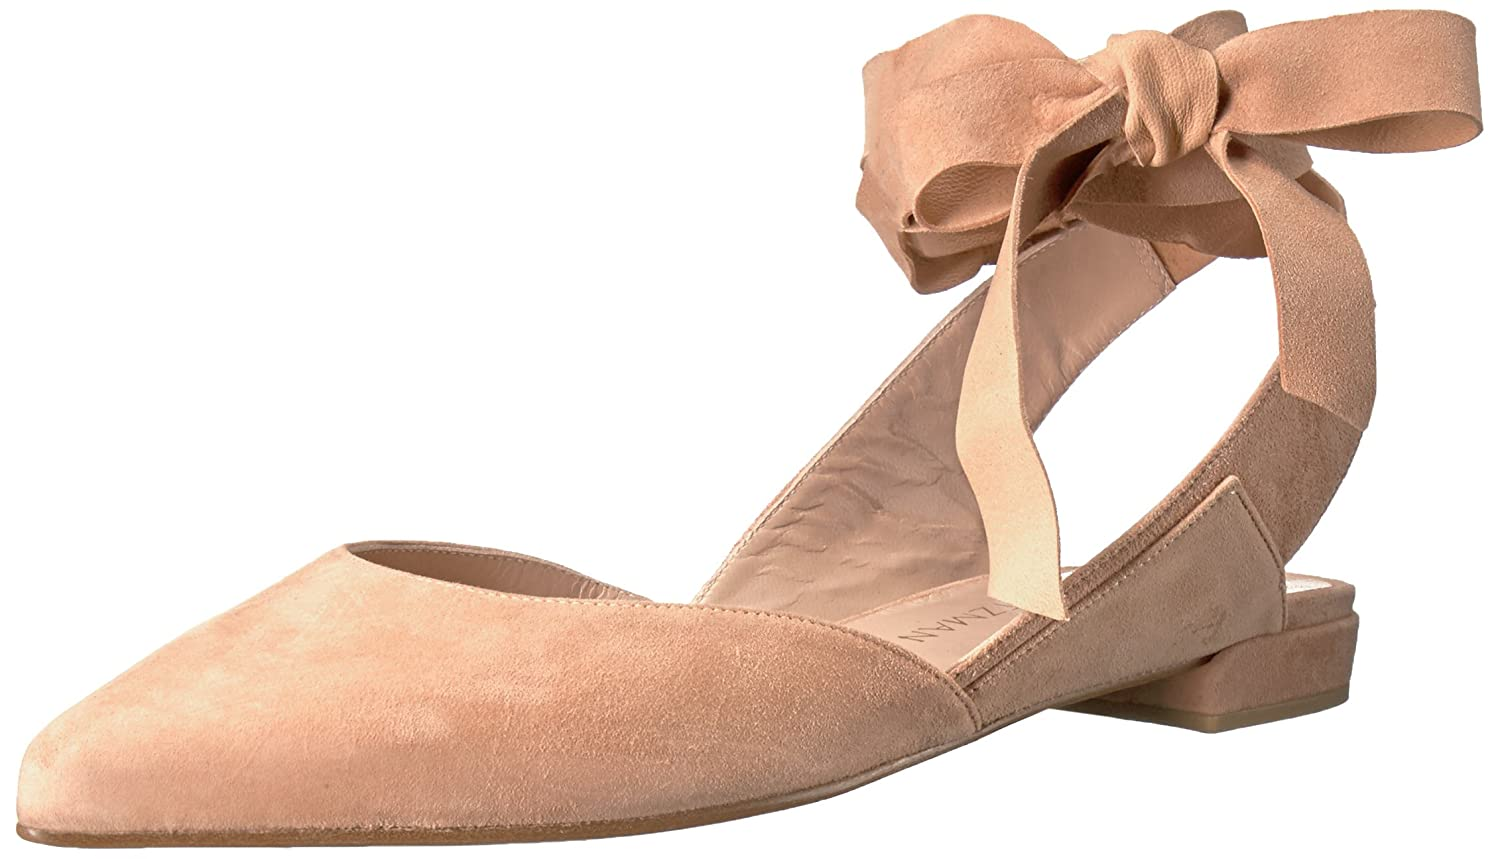 Stuart Weitzman Women's Supersonic Ballet Flat B01M68TO8L 8 B(M) US|Naked